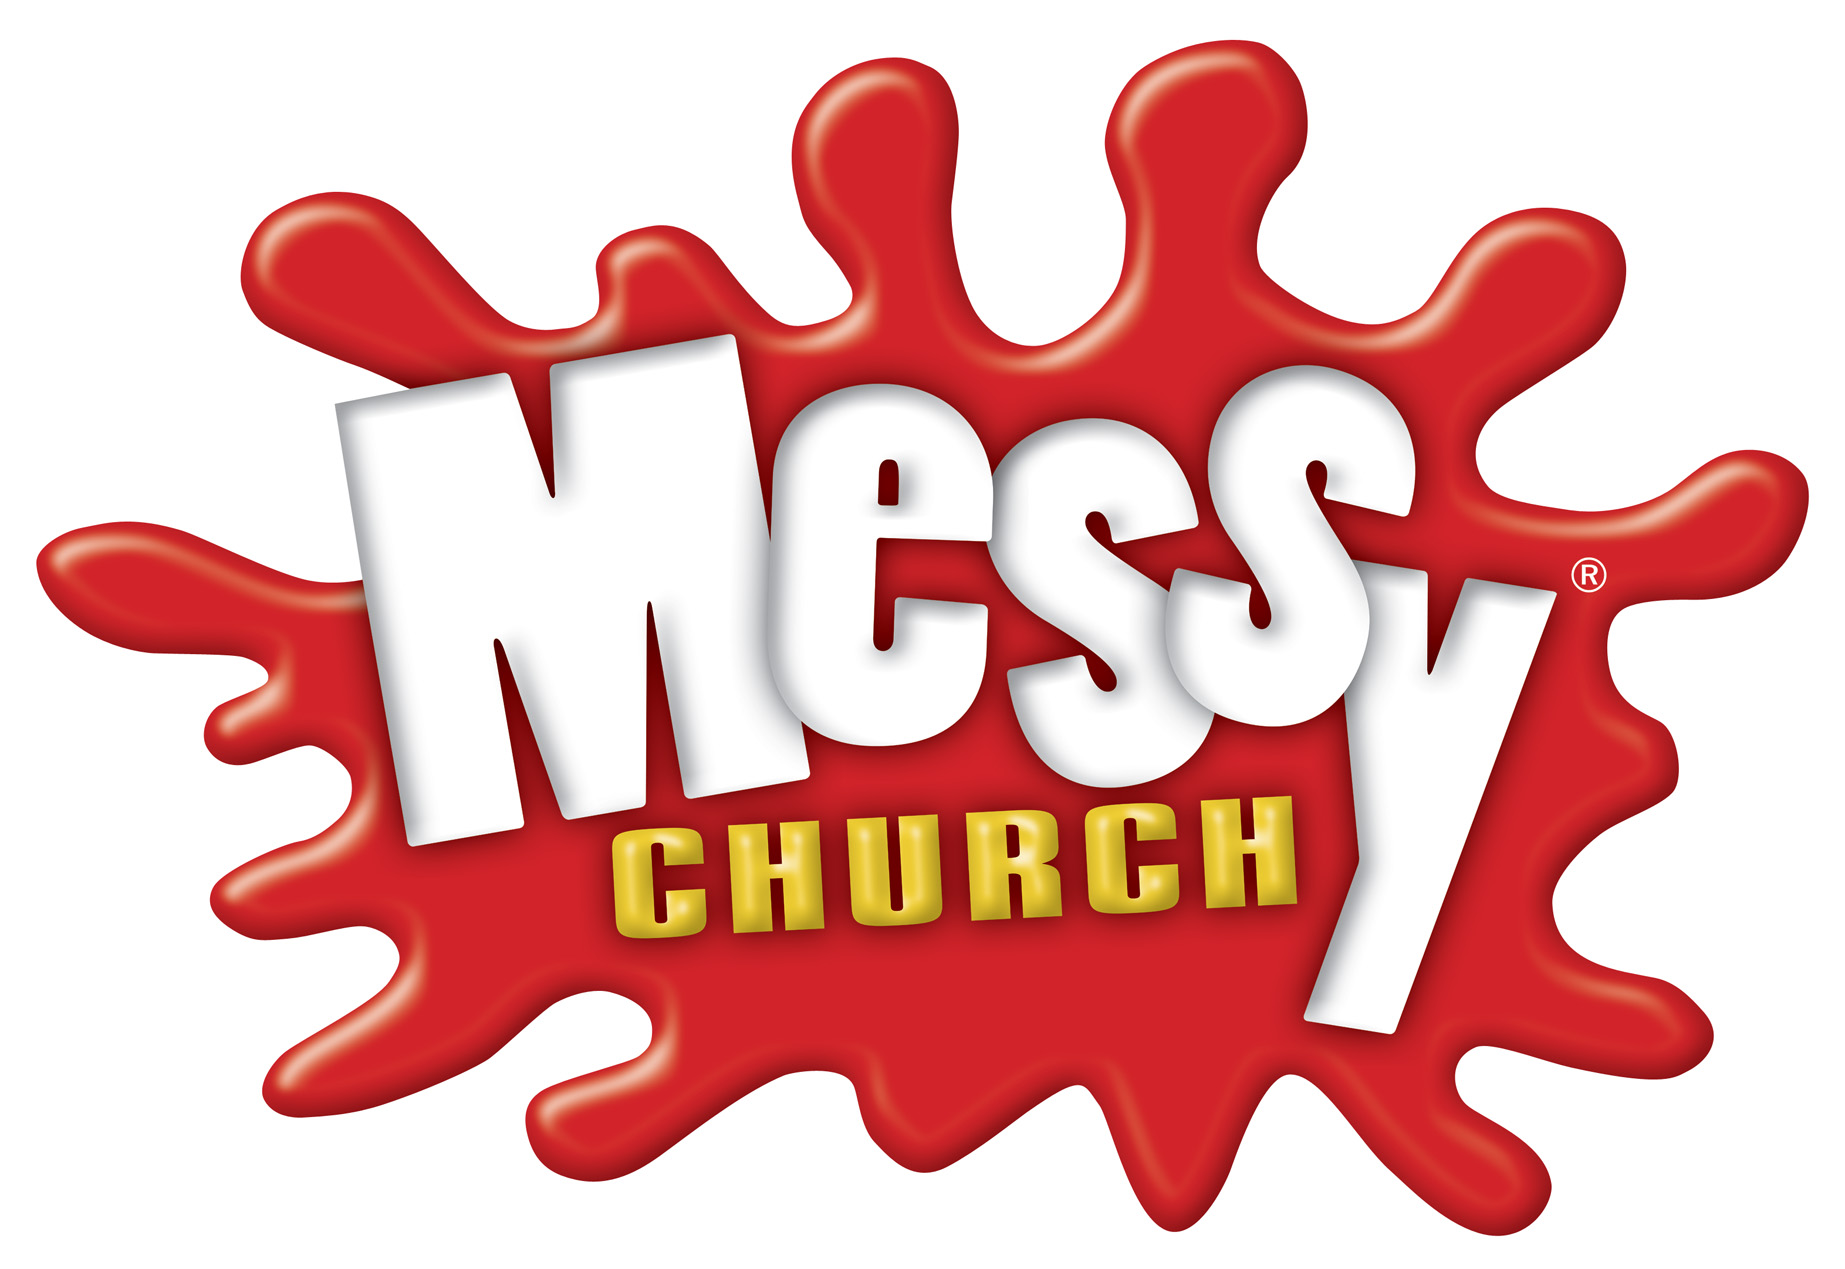 Open Grant awarded for research into Messy Churches